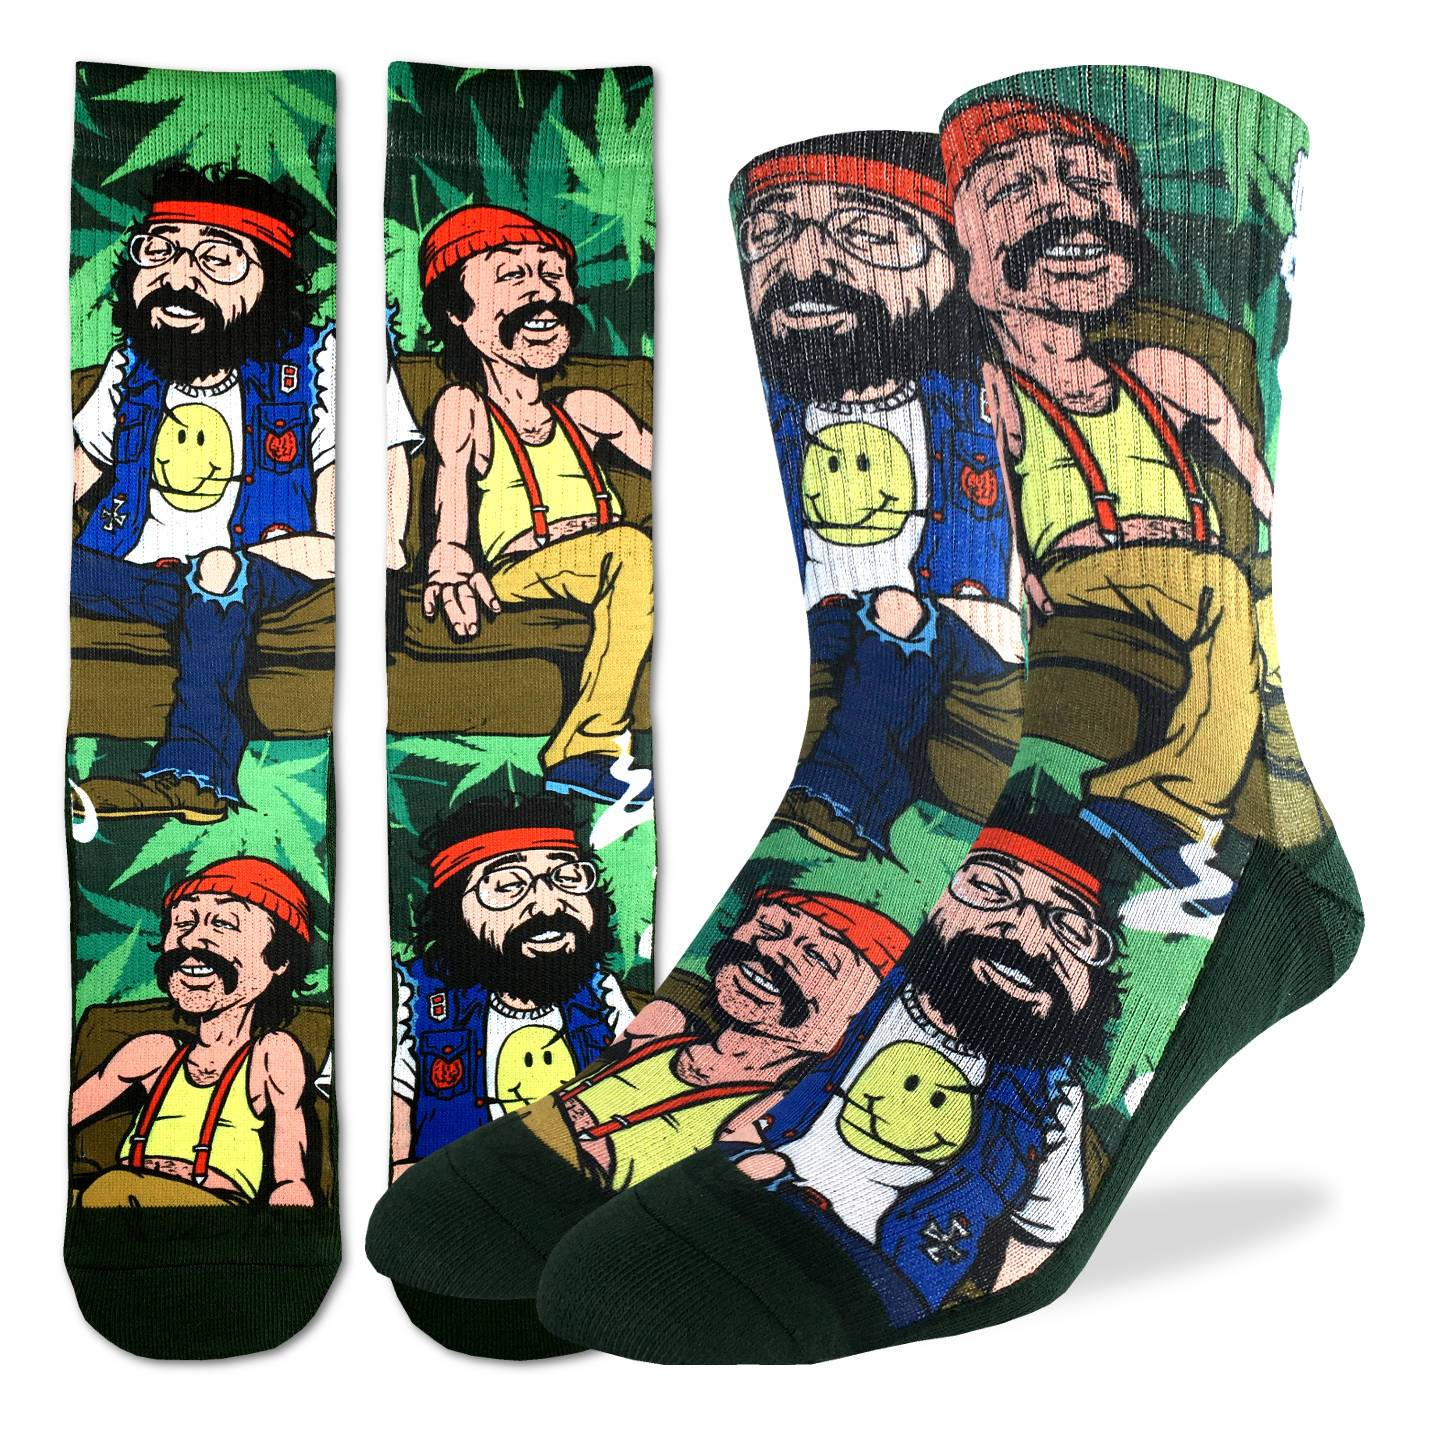 Cheech and Chong Stoner Socks